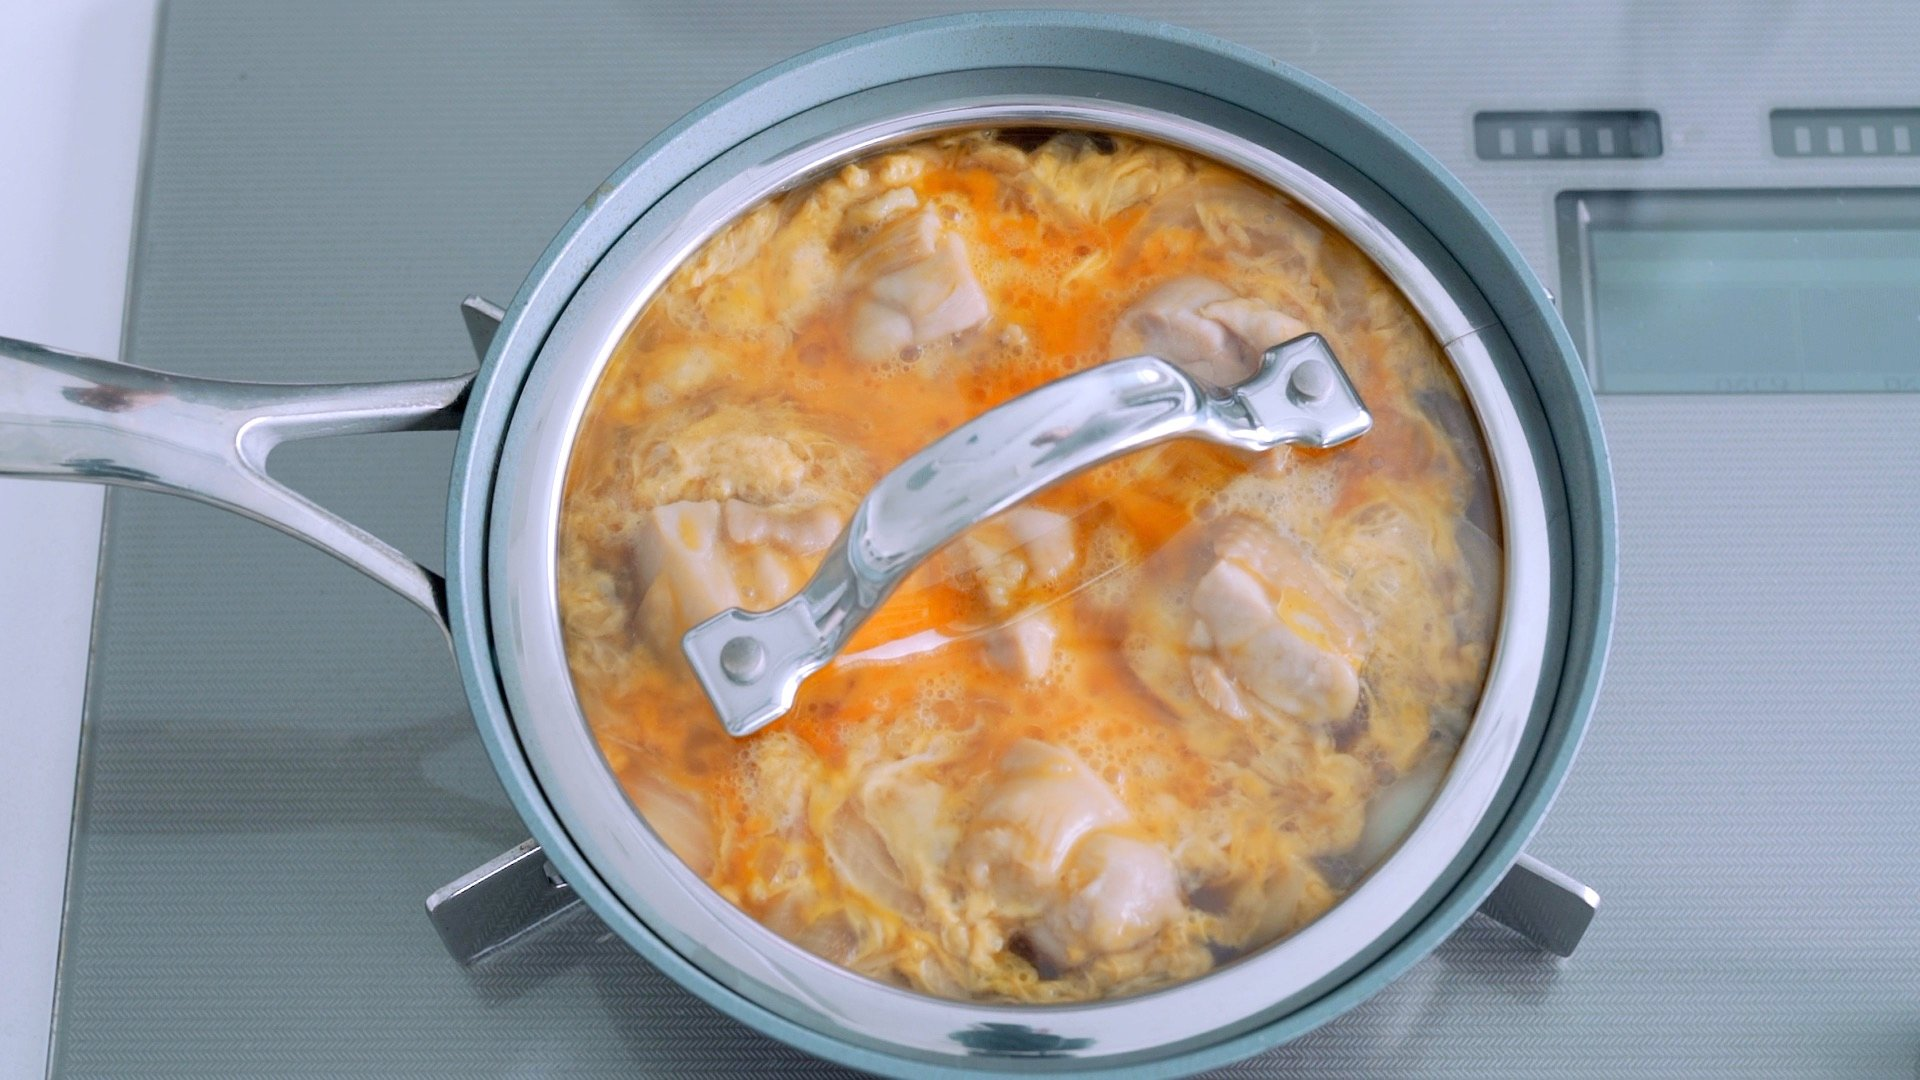 Cover the Oyakodon with a lid to cook the egg through.